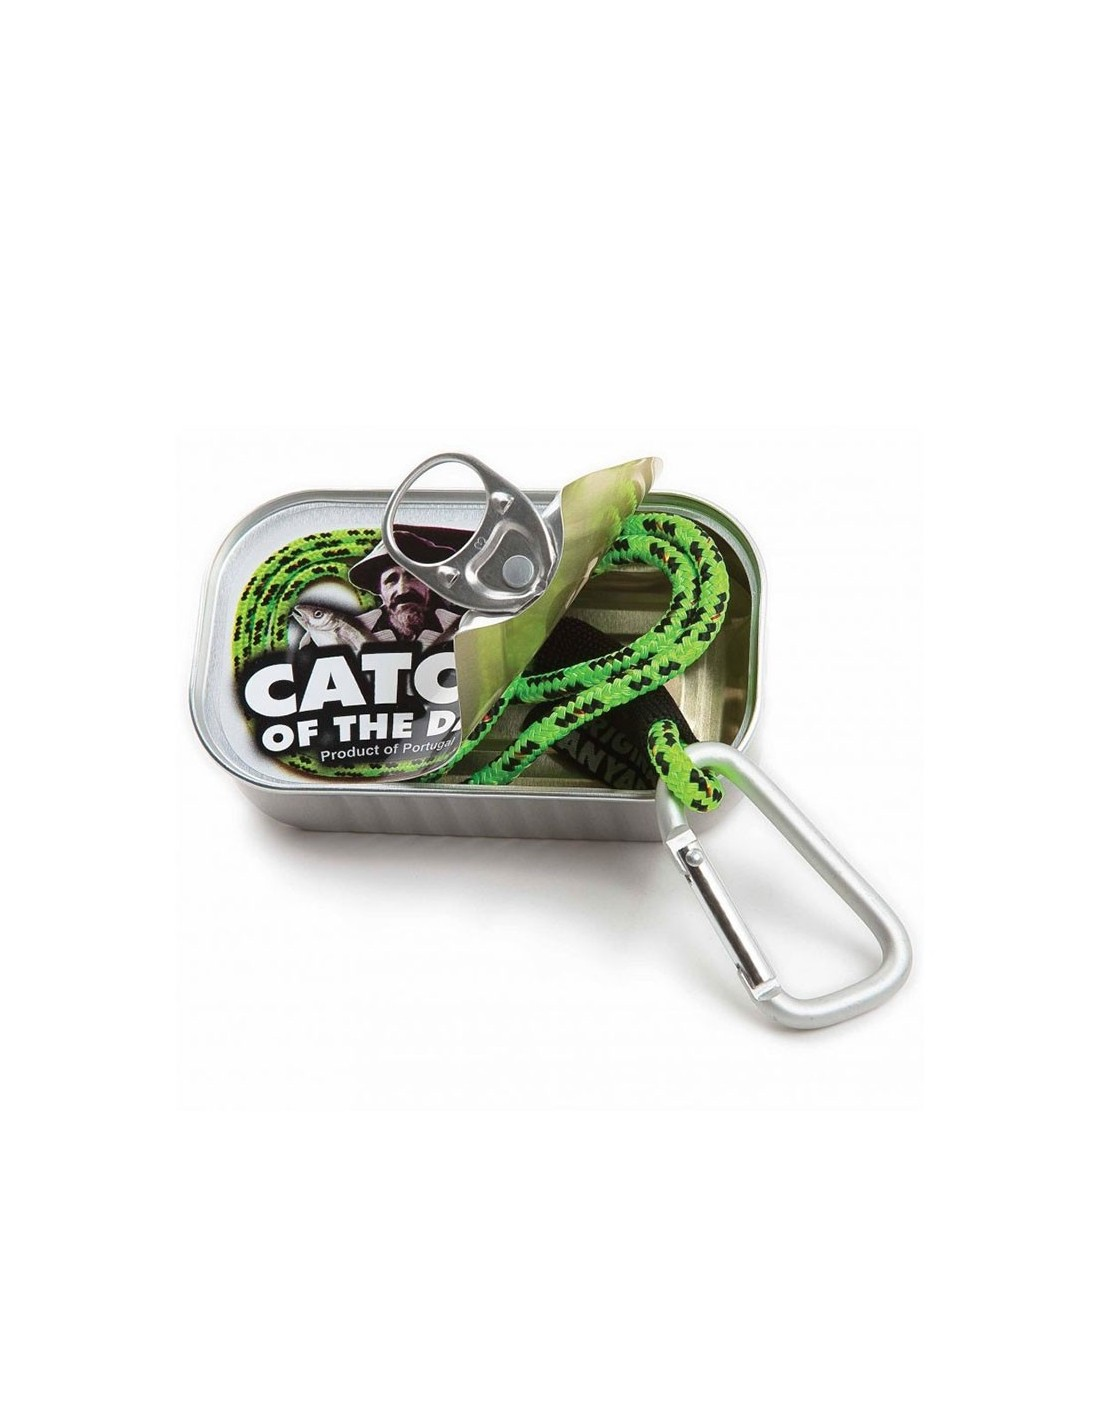 Lanyard / Keycord In Blikje - Catch Off The Day - The Captain's Collection - Nautische Accessoires - OL3805